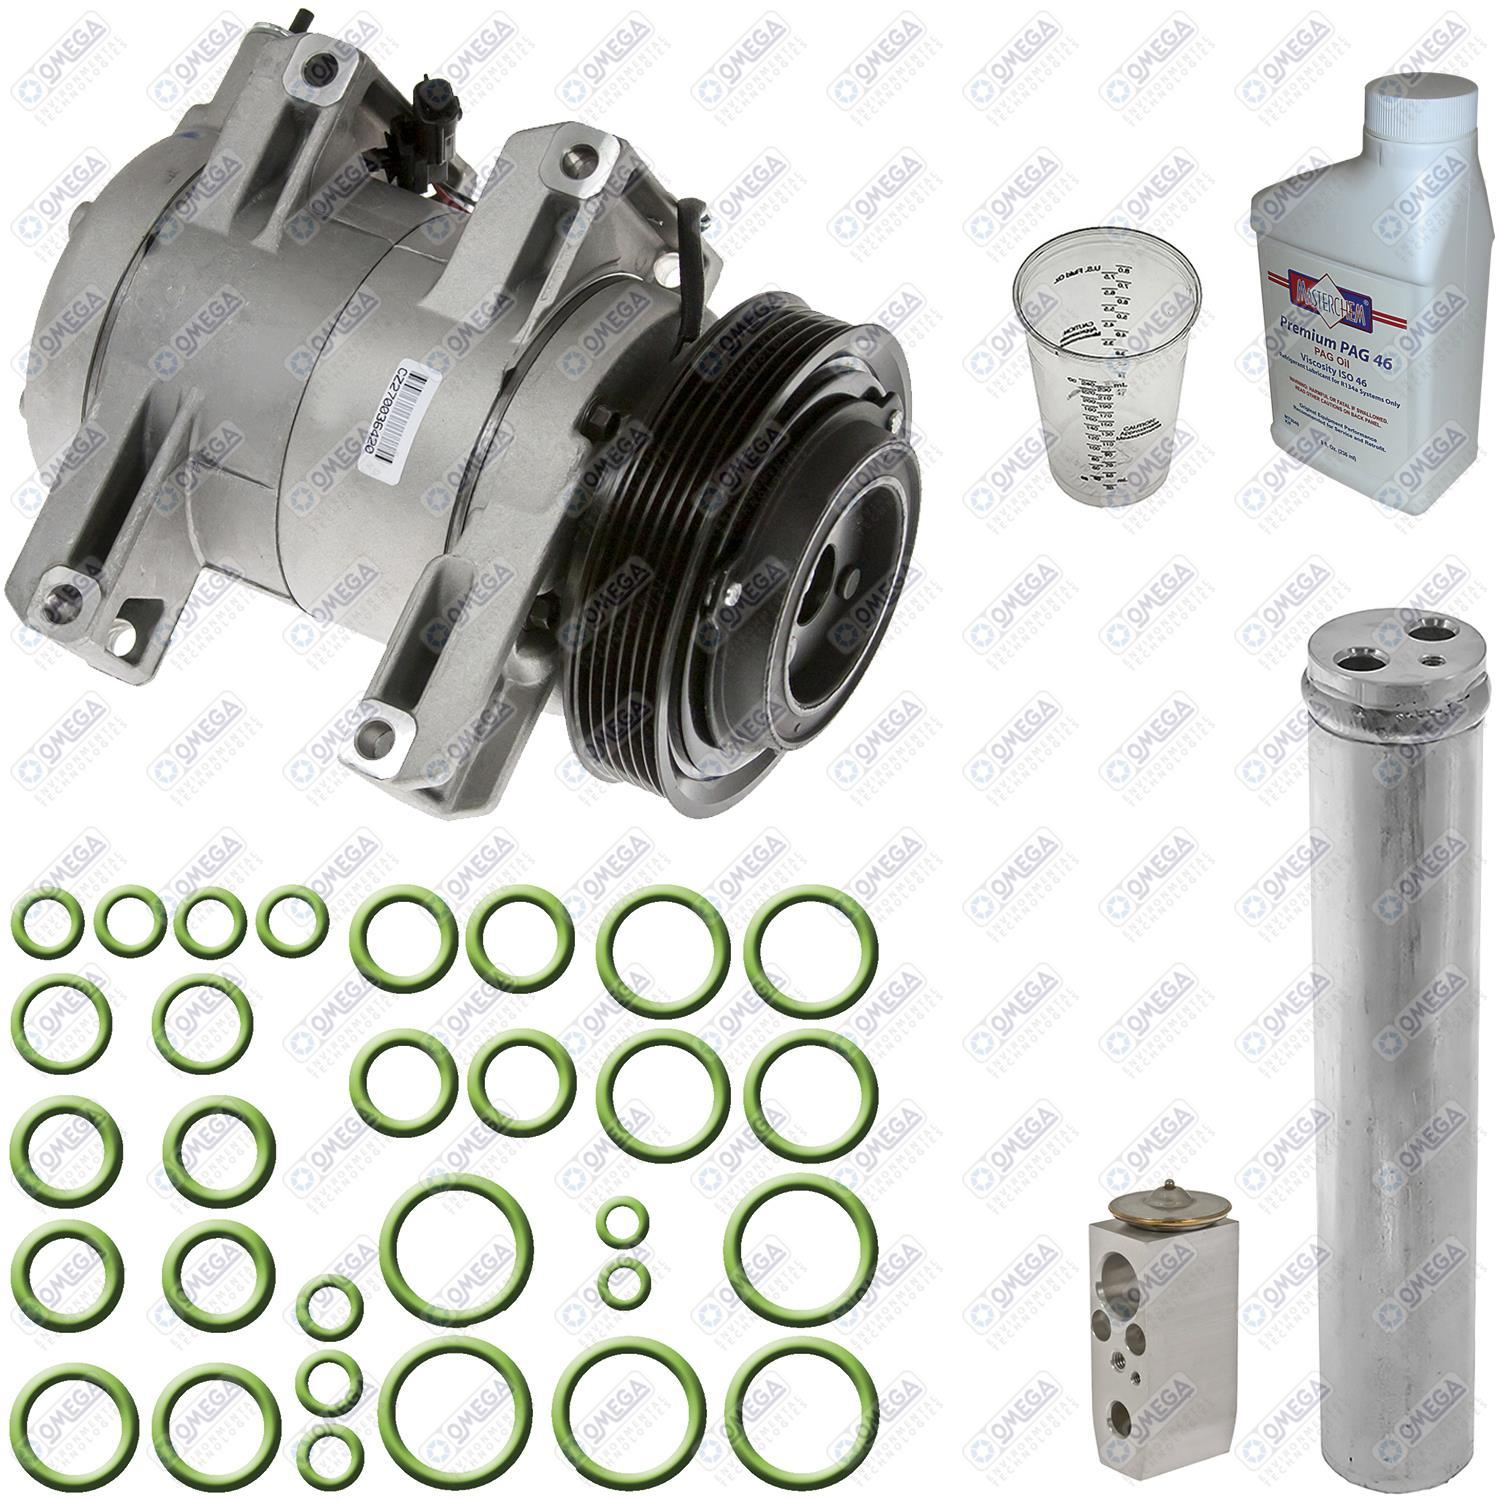 08 13 nissan rogue ac air conditioning compressor repair kit